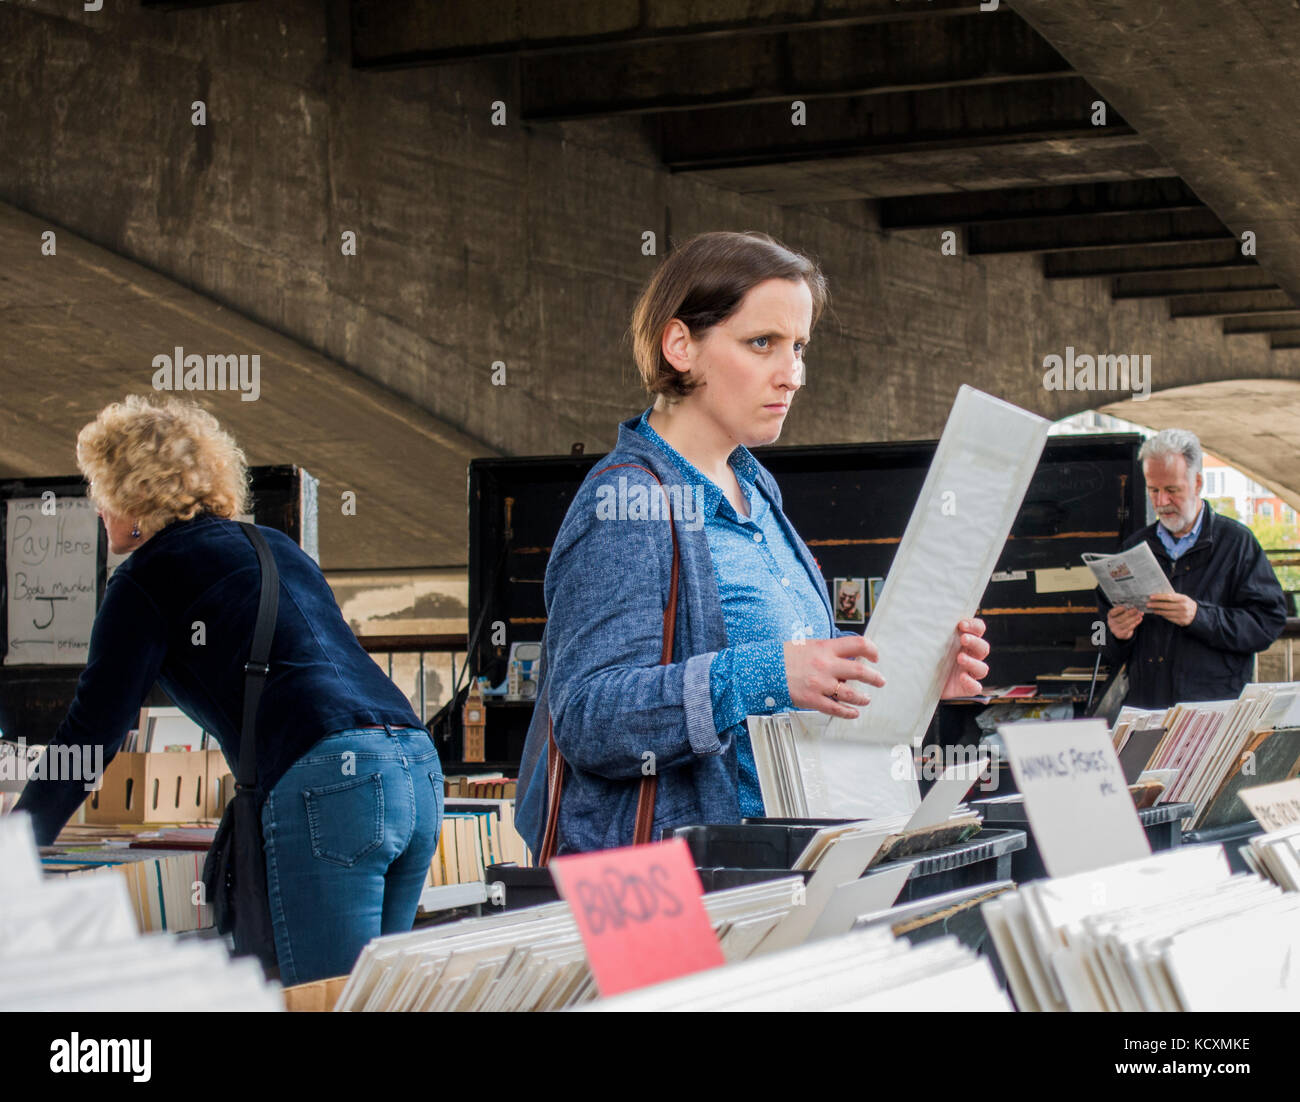 Woman thinking / lost in thought, holding a print at South Bank / Southbank book market, under Waterloo Bridge over - Stock Image